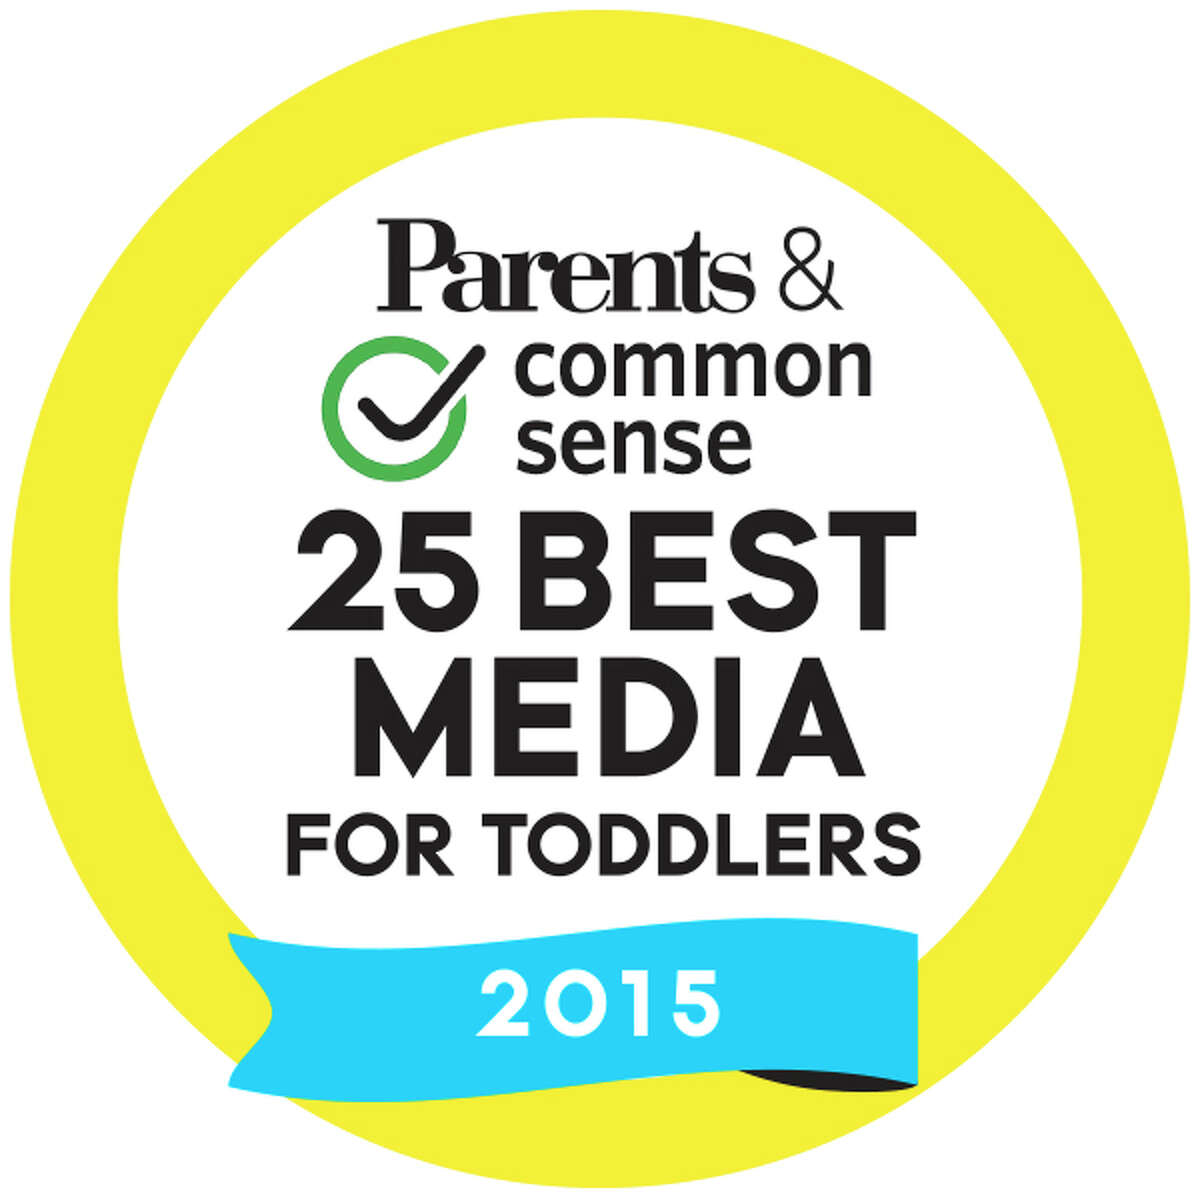 2015 Parents & Common Sense 25 Best Media For Toddlers seal